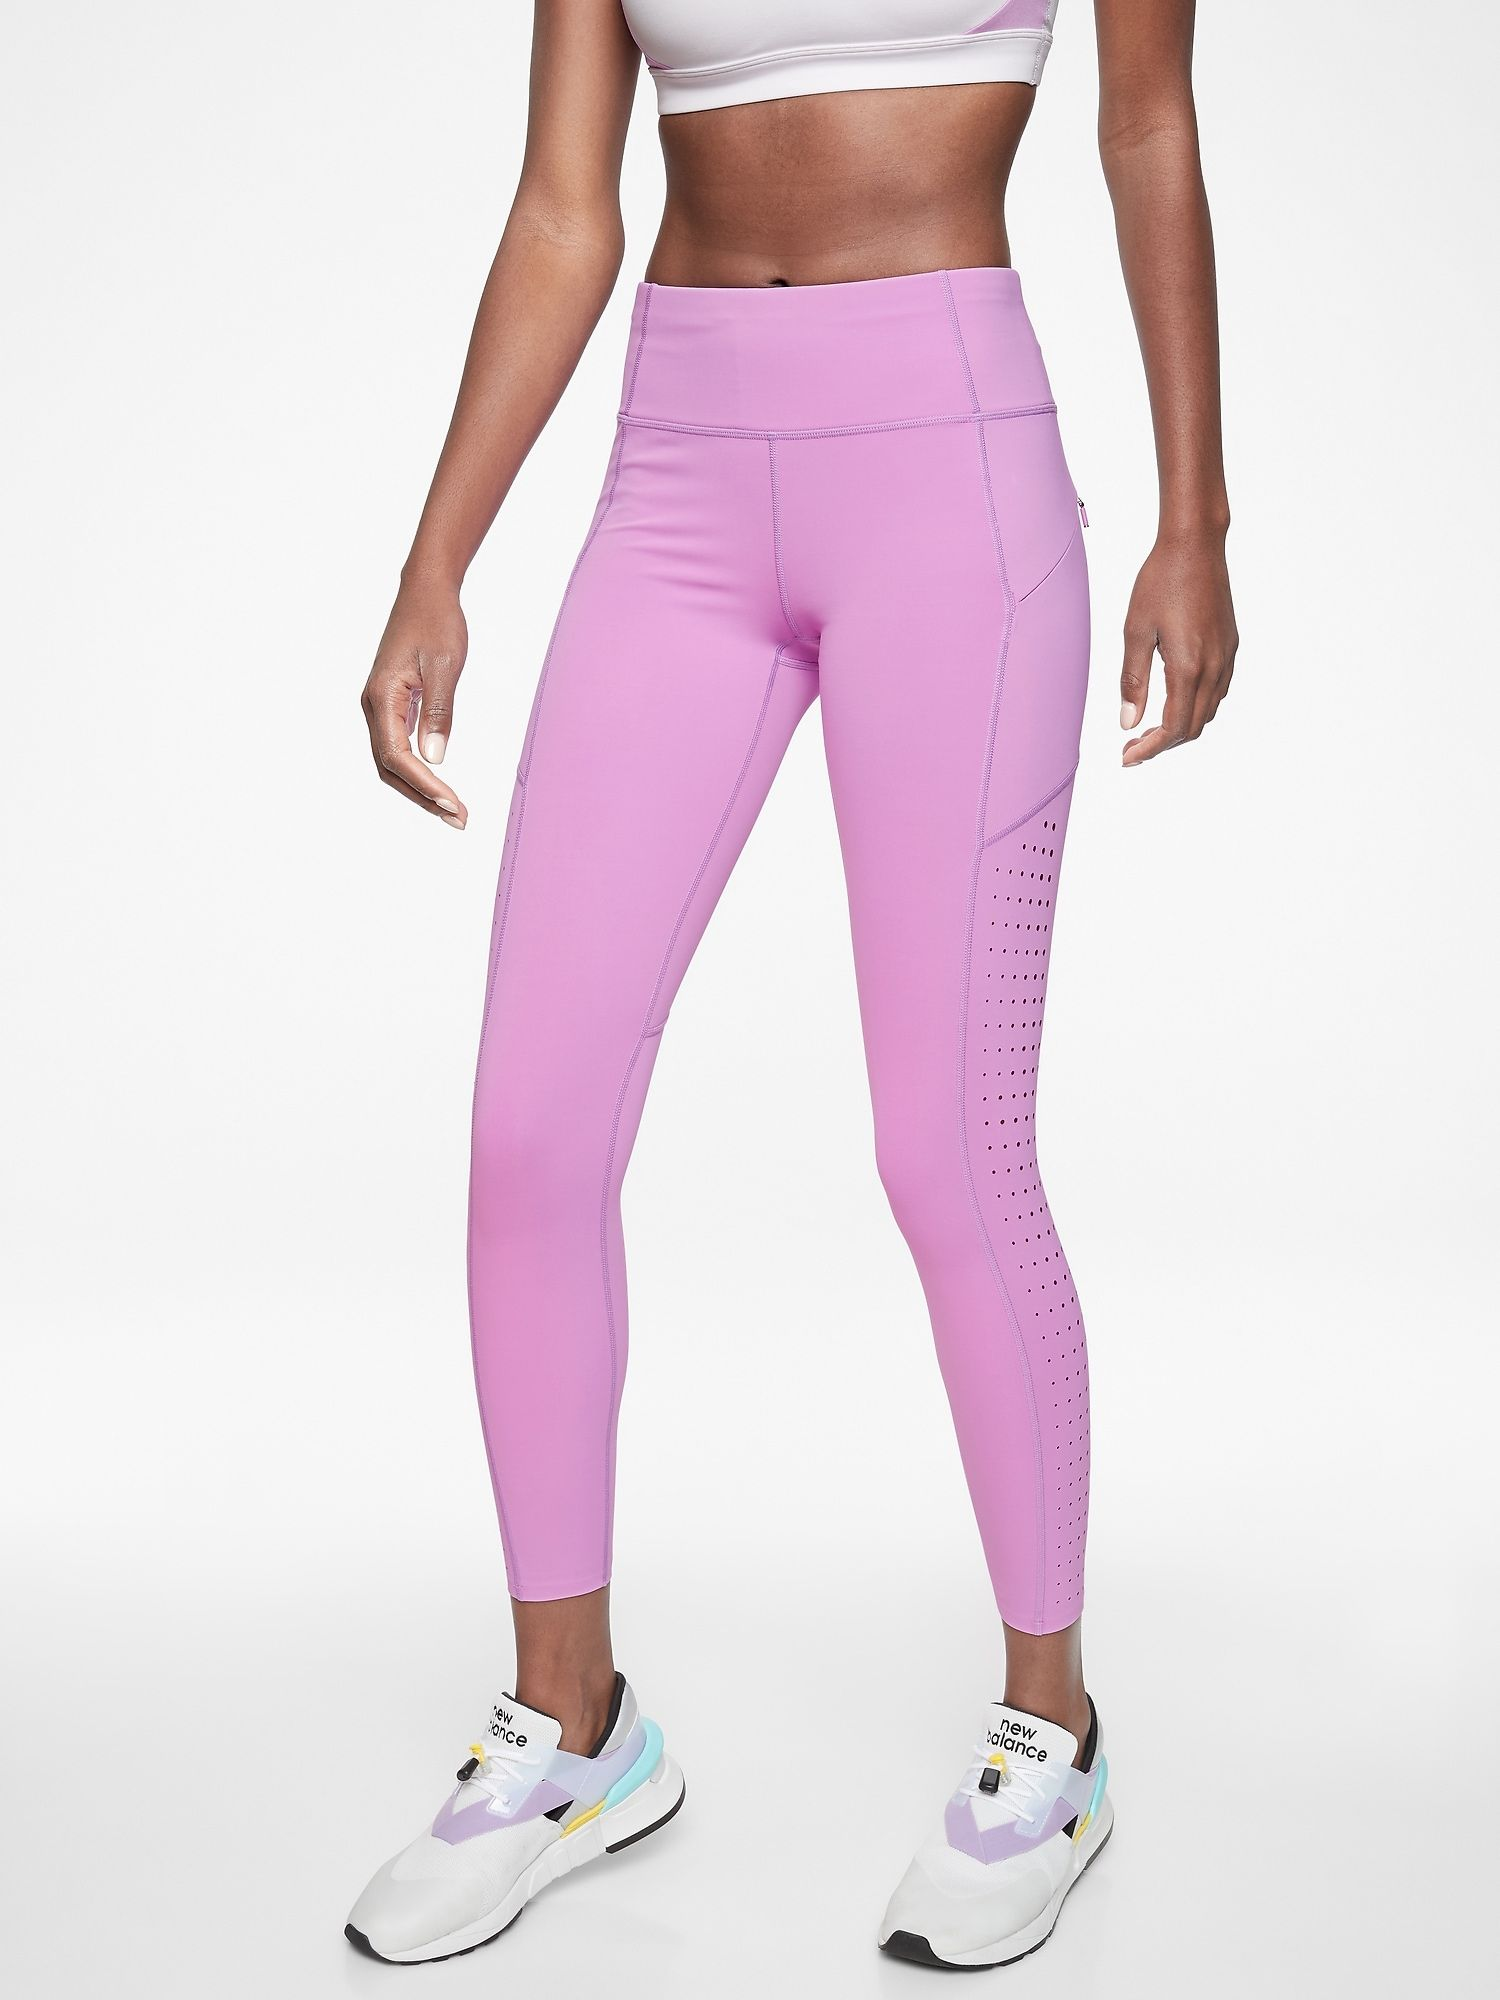 291a91d1ad Contender Laser Cut 7/8 Tight in 2019 | Exercise | Workout leggings ...